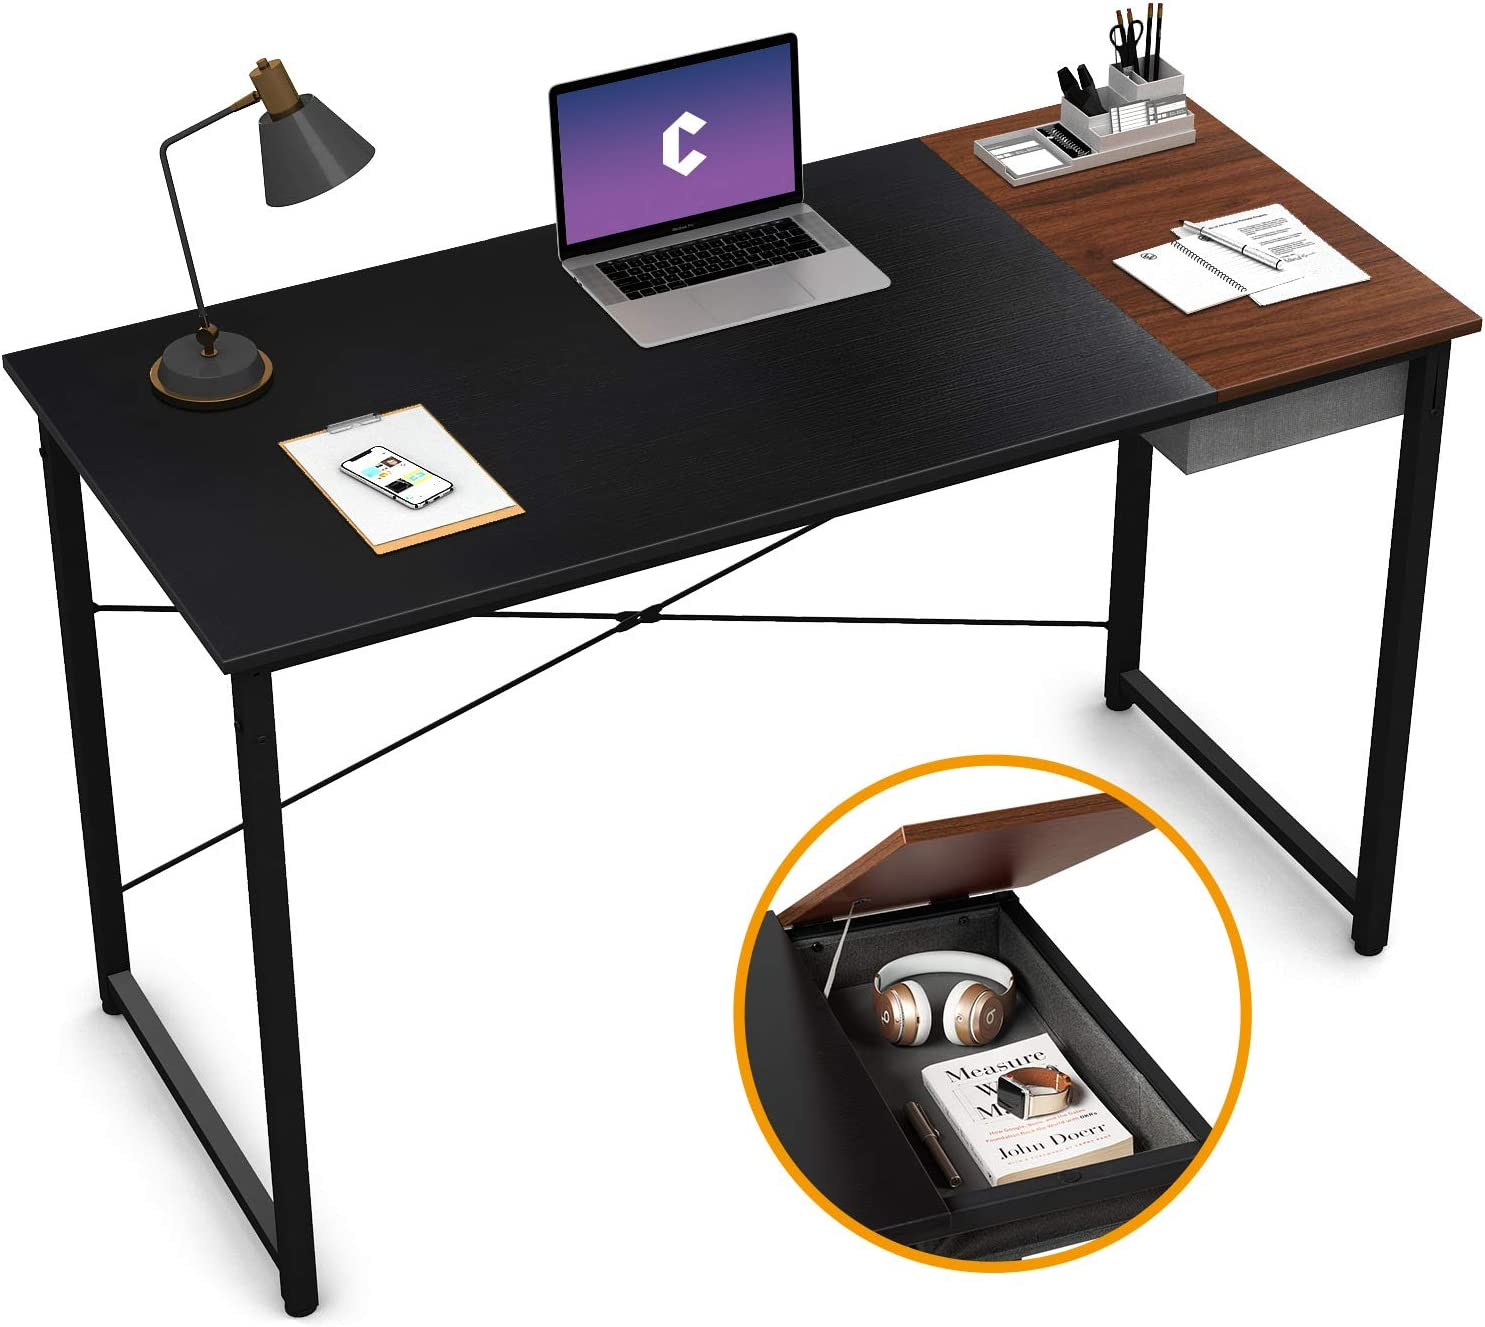 "Cubiker Computer Desk 47"" Home Office Writing Study Laptop Table, Modern Simple Style Desk with Drawer, Black Espresso"